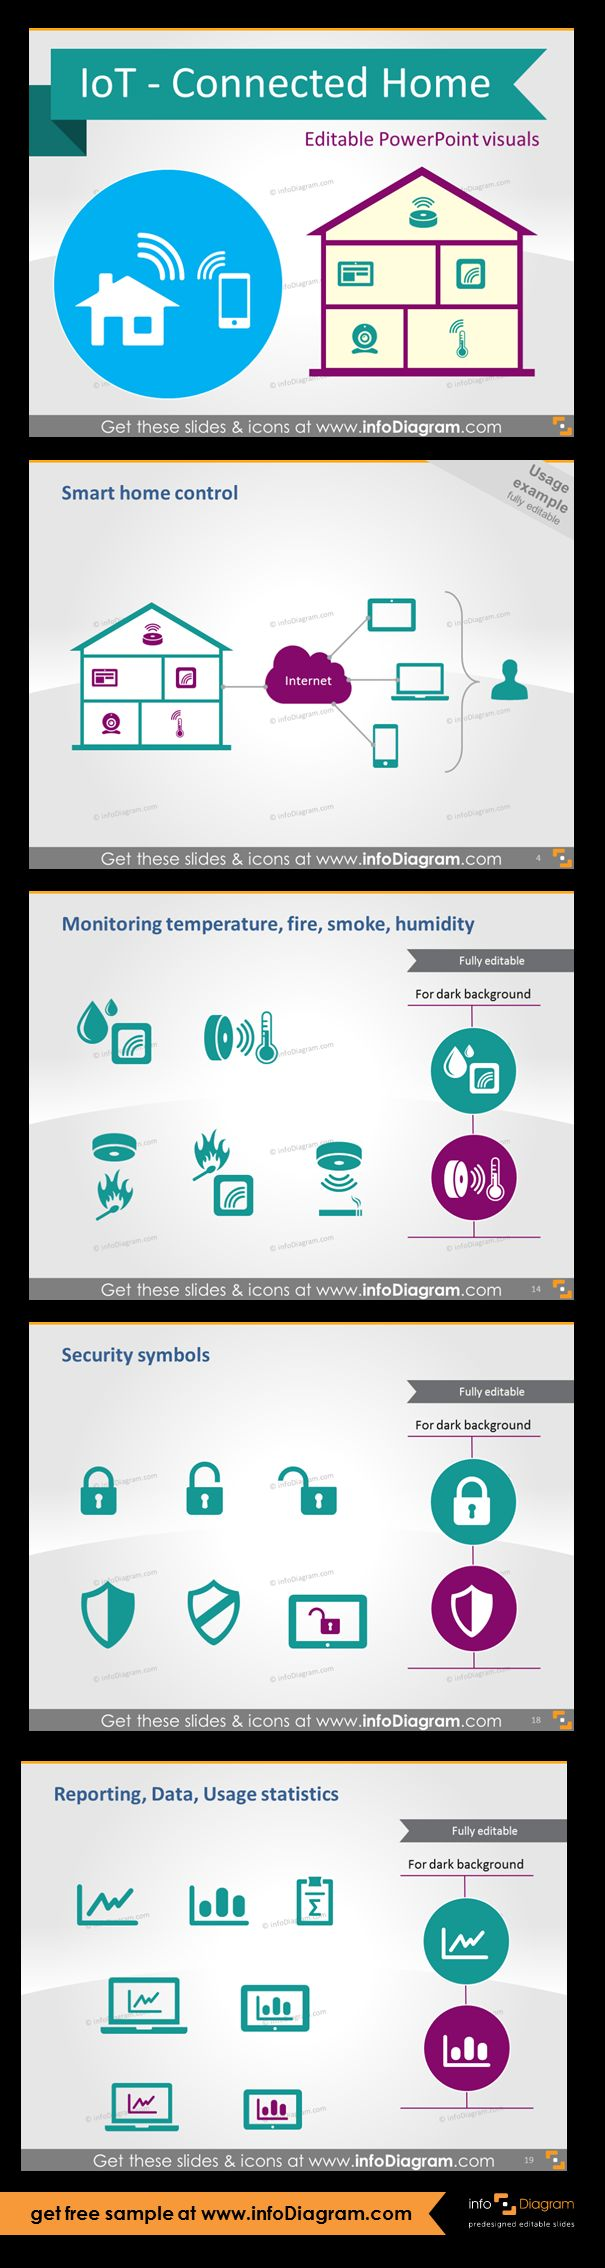 IoT - Connected home graphics. Symbols of monitoring temperature, fire, smoke, humidity. Security and protection icons. Icons of reporting, data, usage statistics. Smart home control and benefits of connected home.